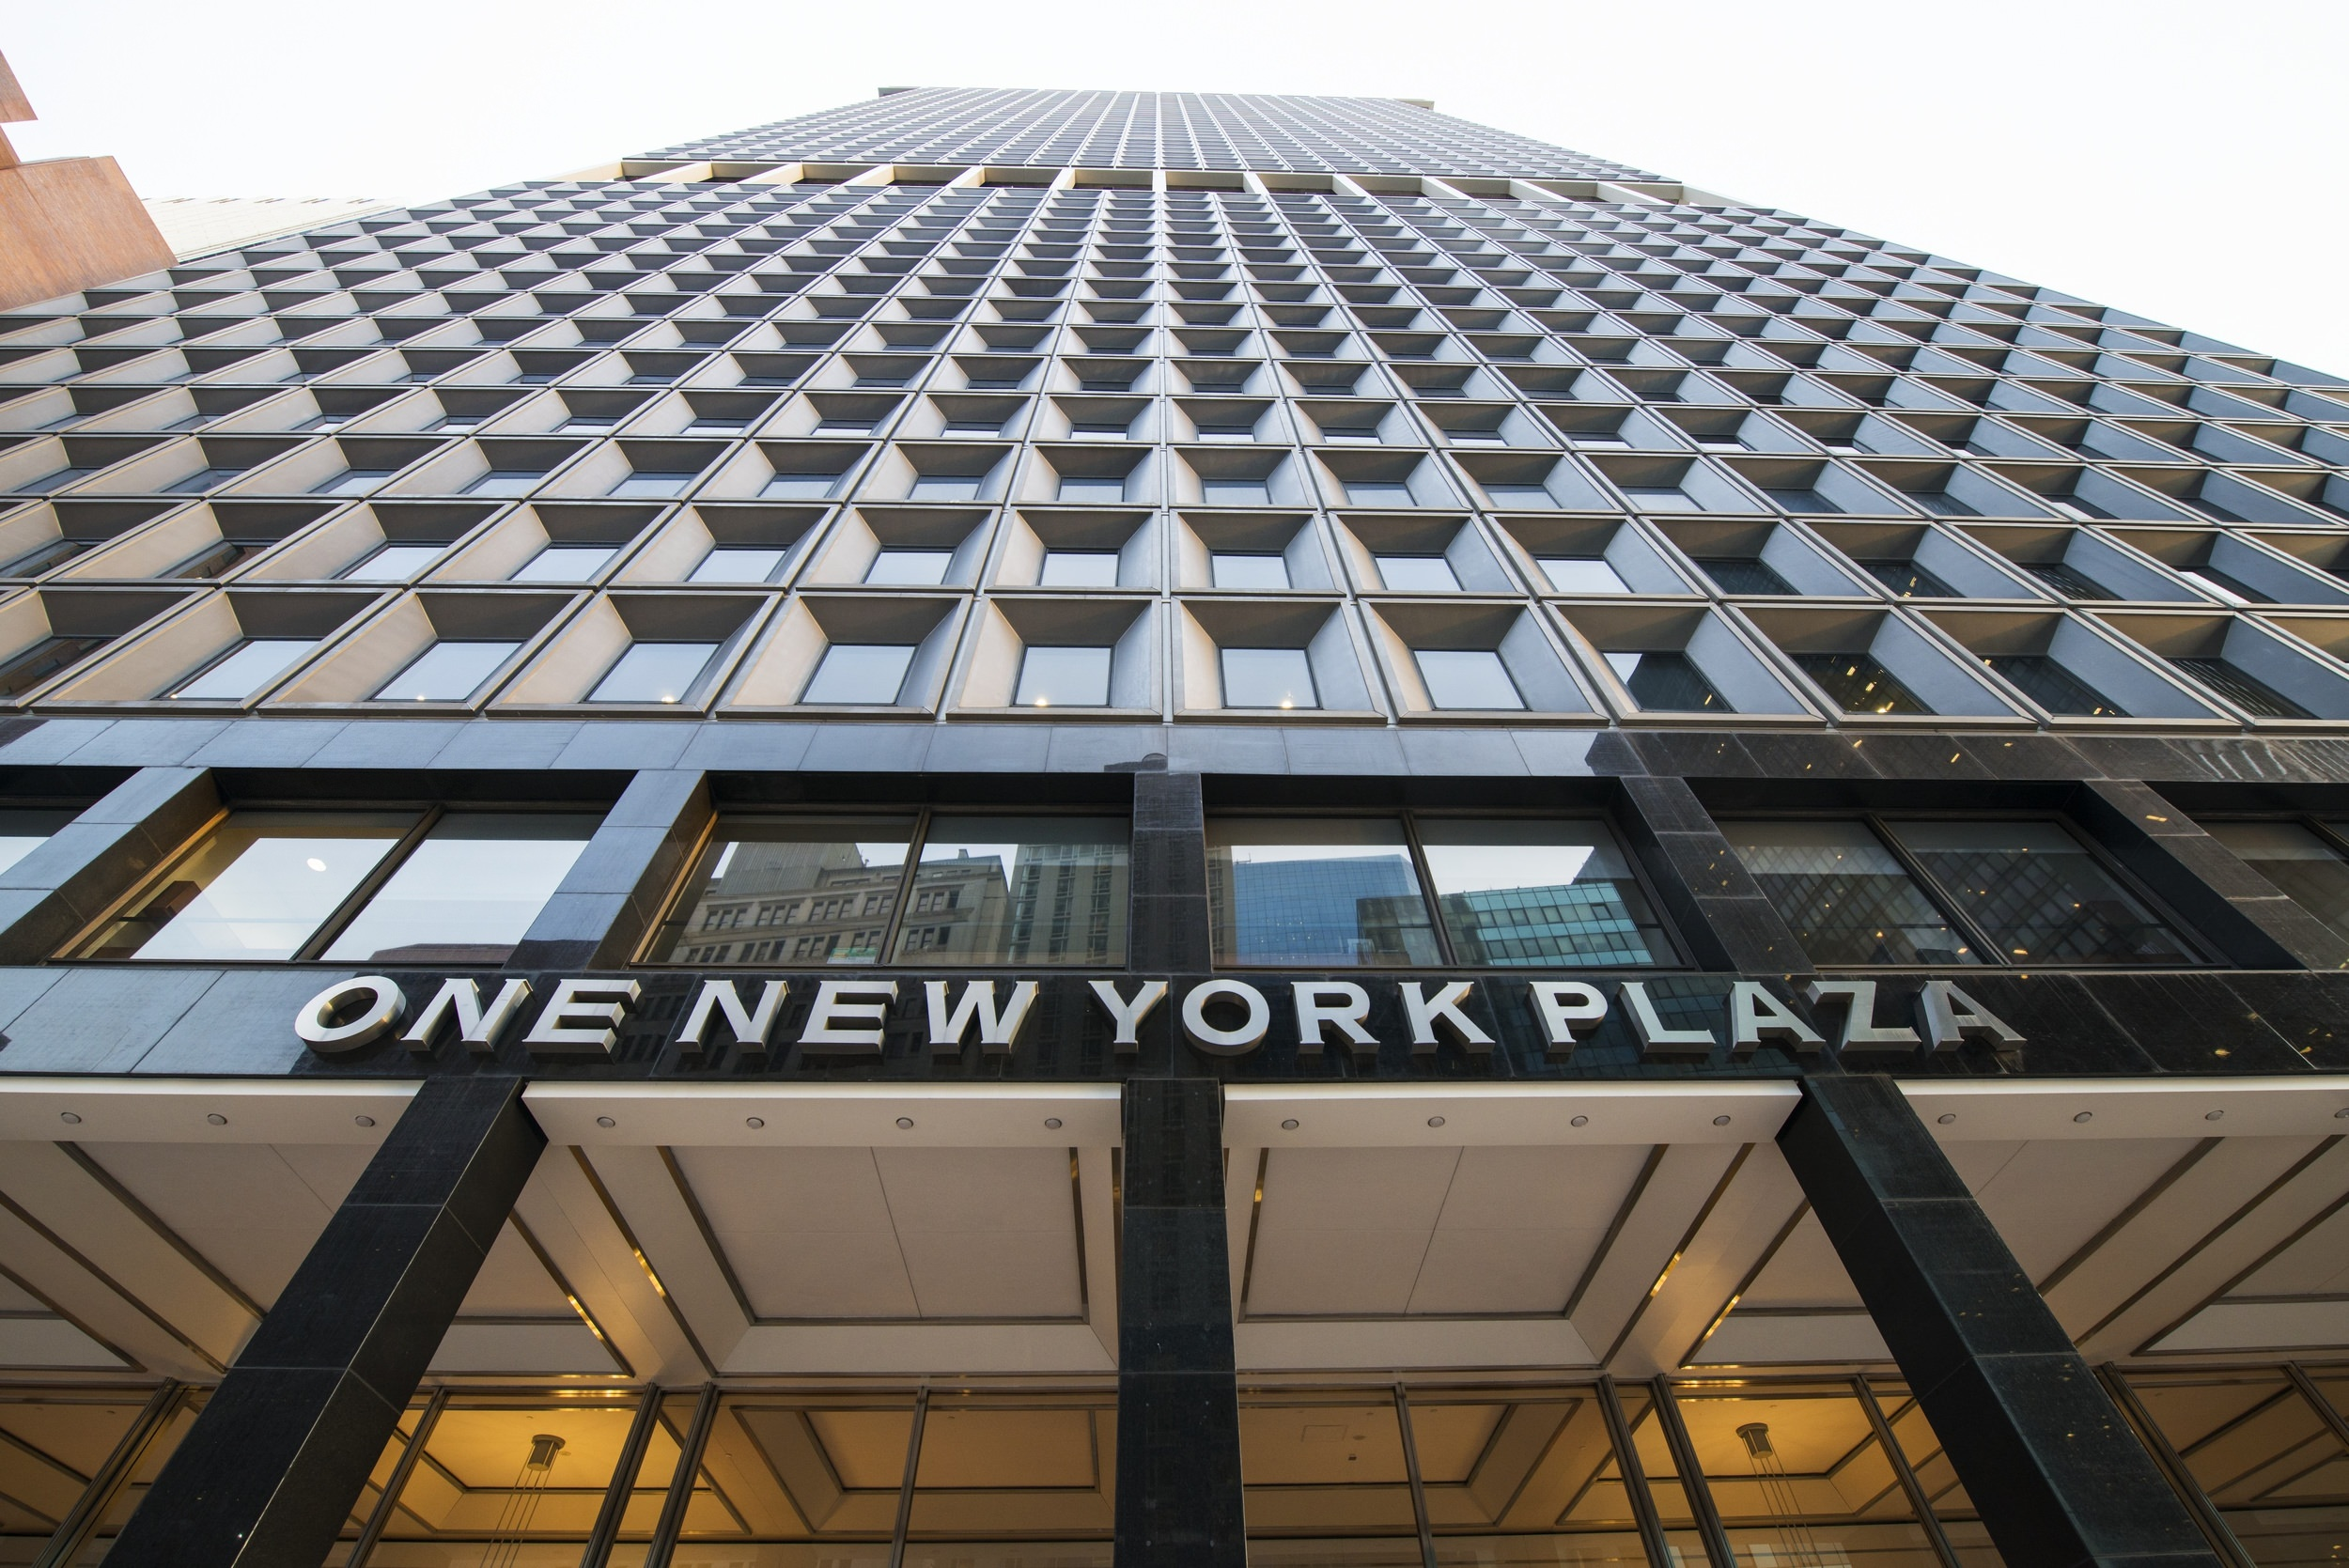 This is one new york plaza that is a tall building with a lot of windows on the face of it.